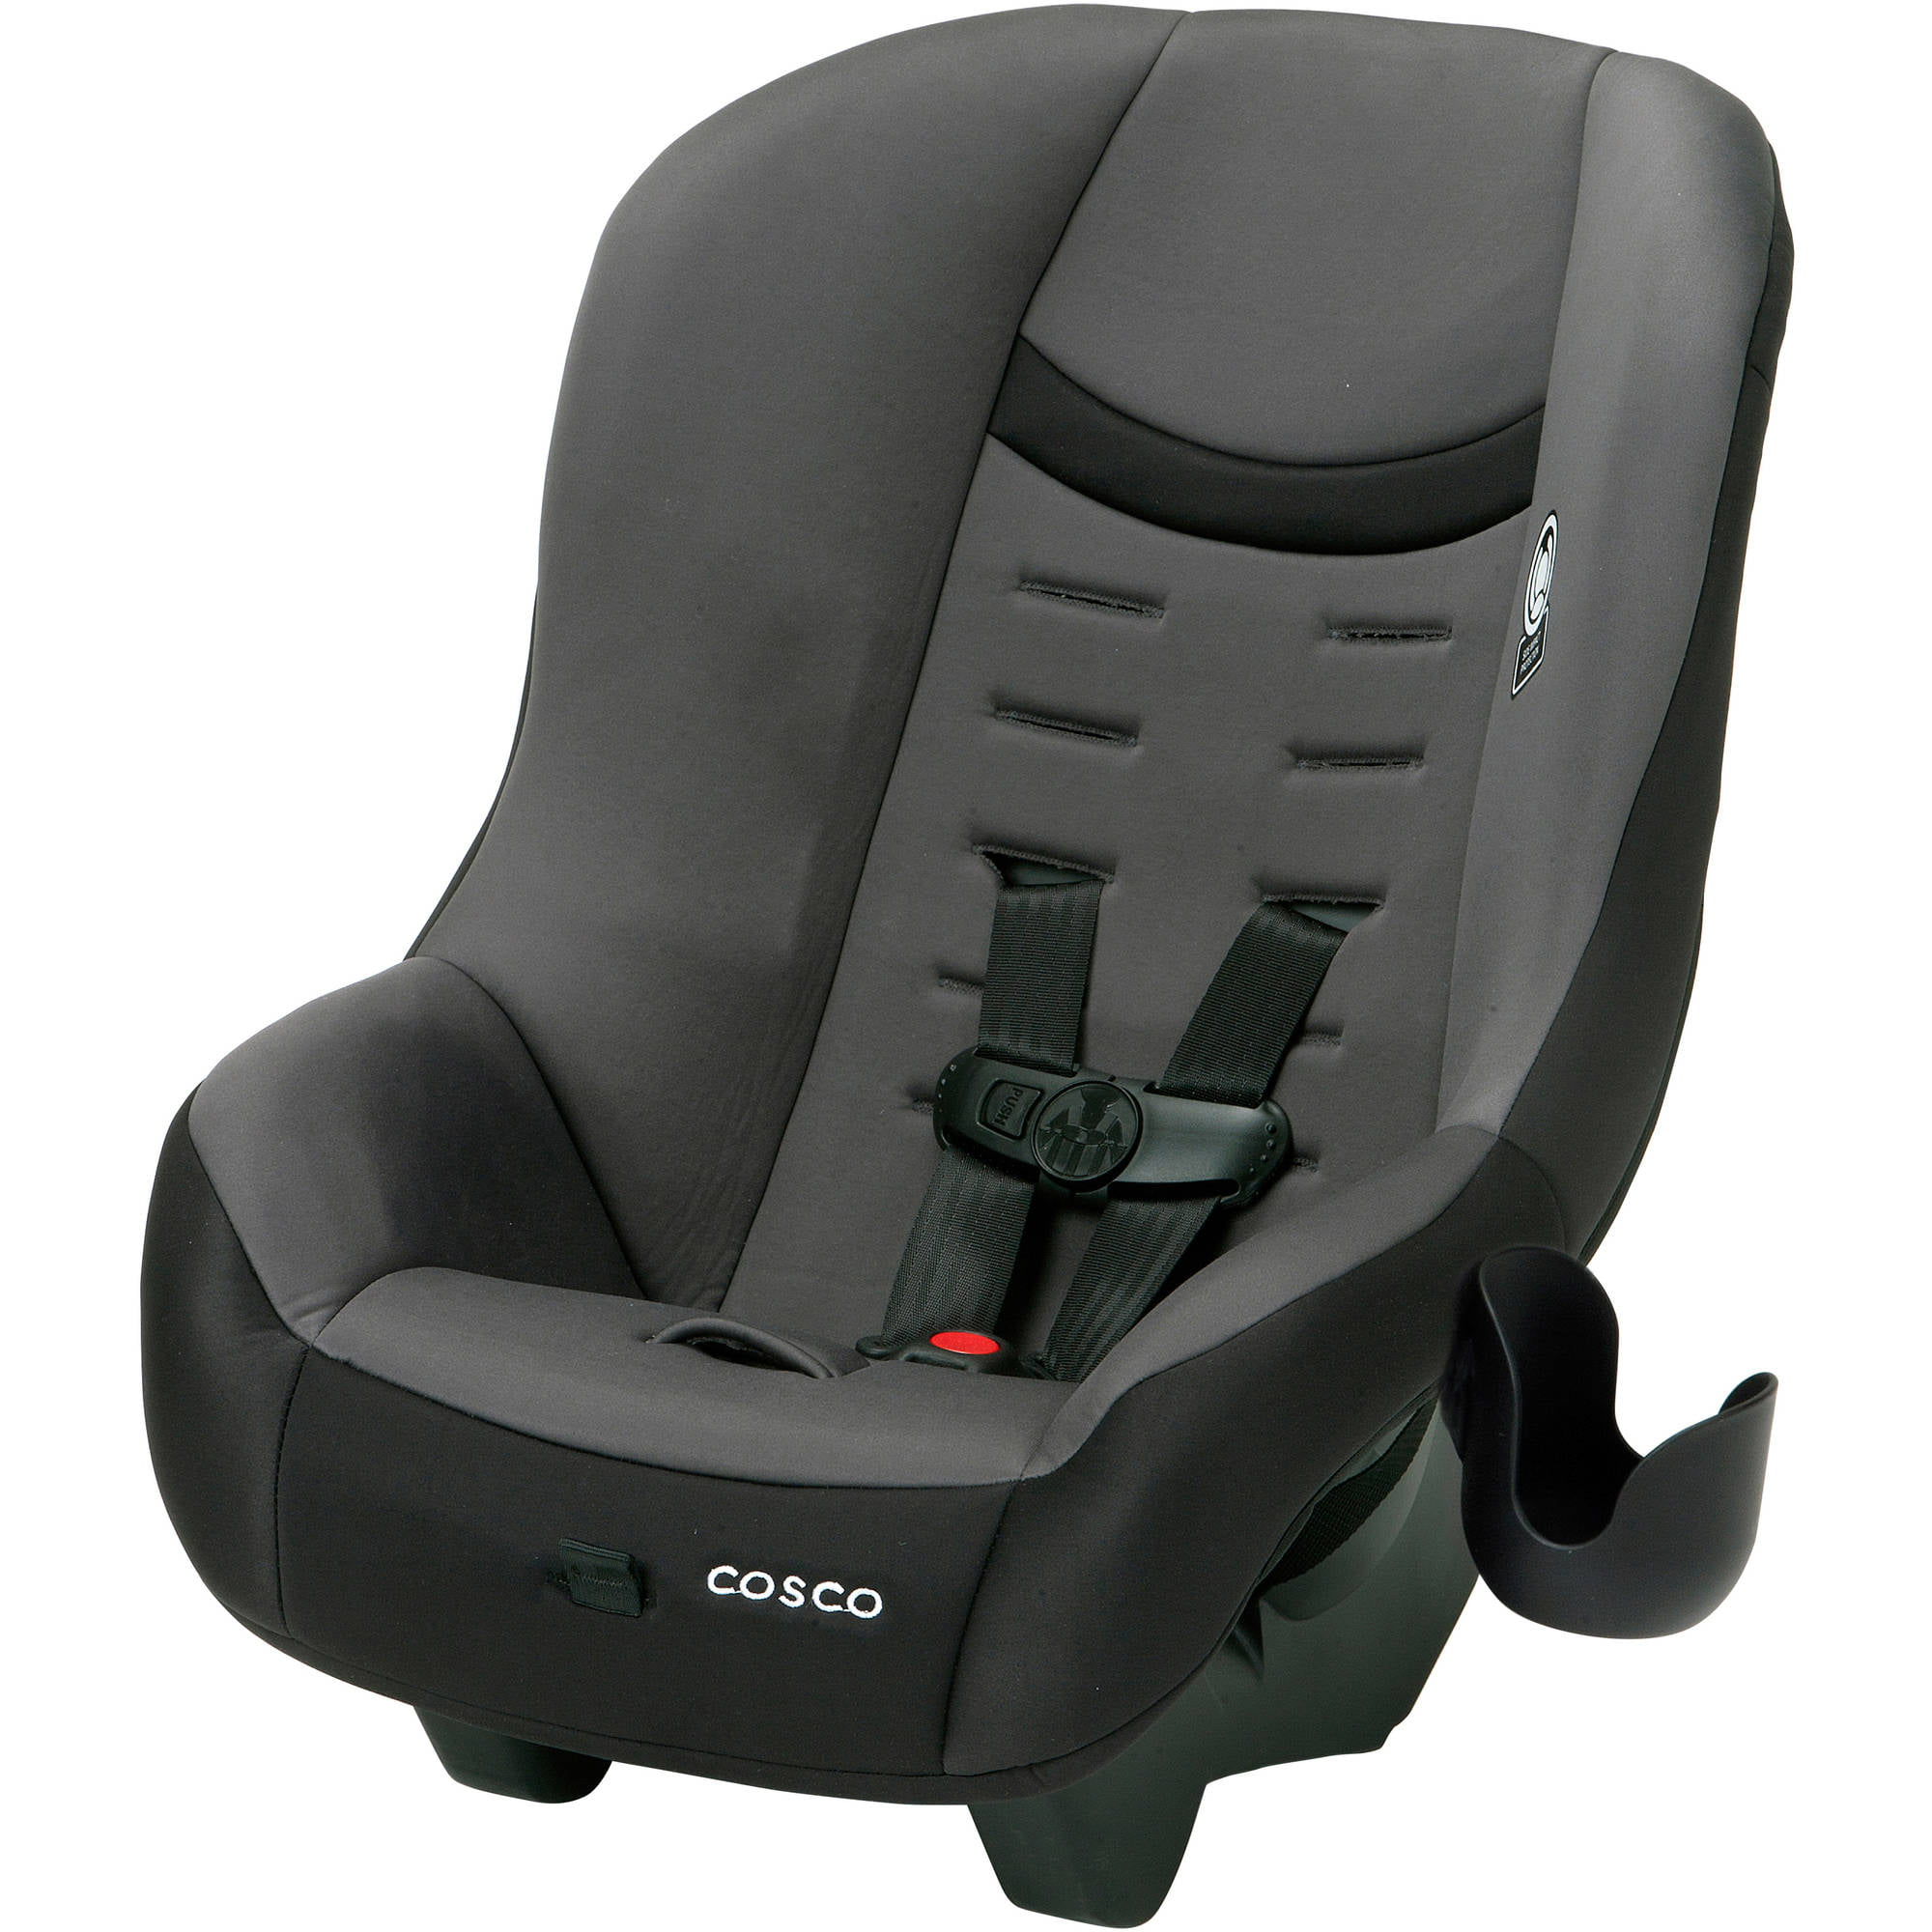 Cosco Scenera NEXT Convertible Car Seat Baby Child Infant ...